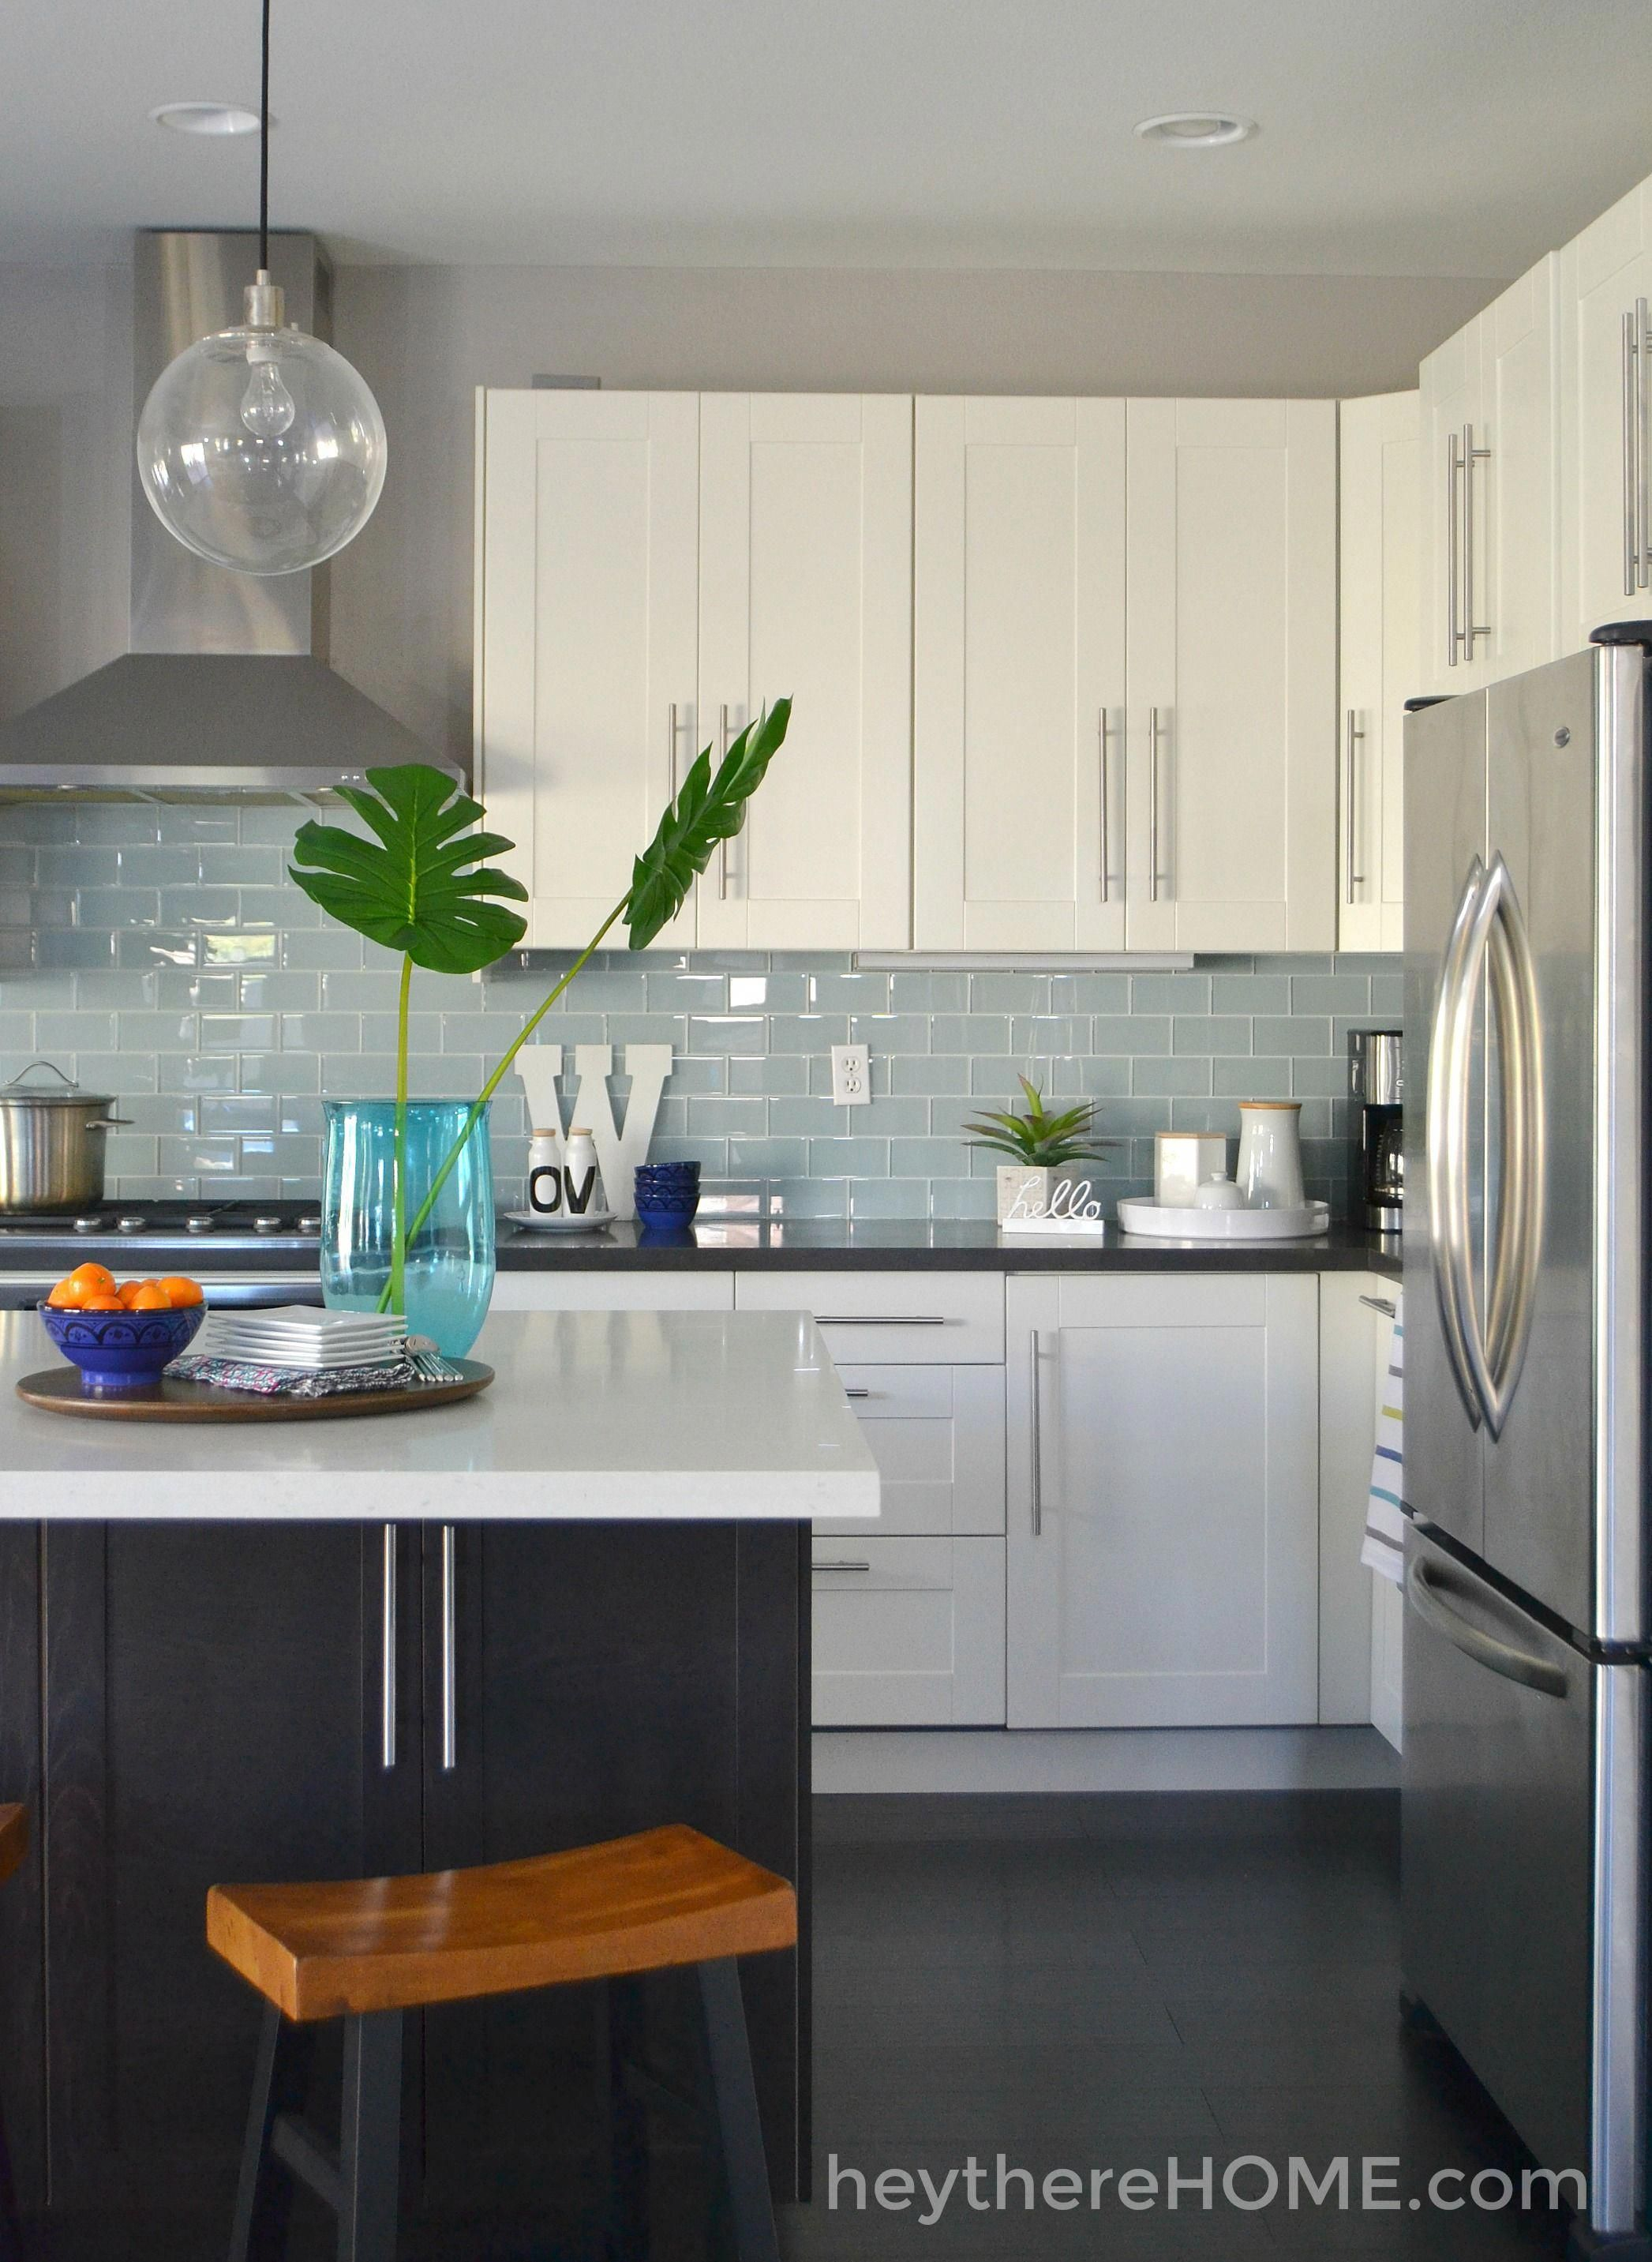 Kitchen Remodel Before and After....LOVE the colors and